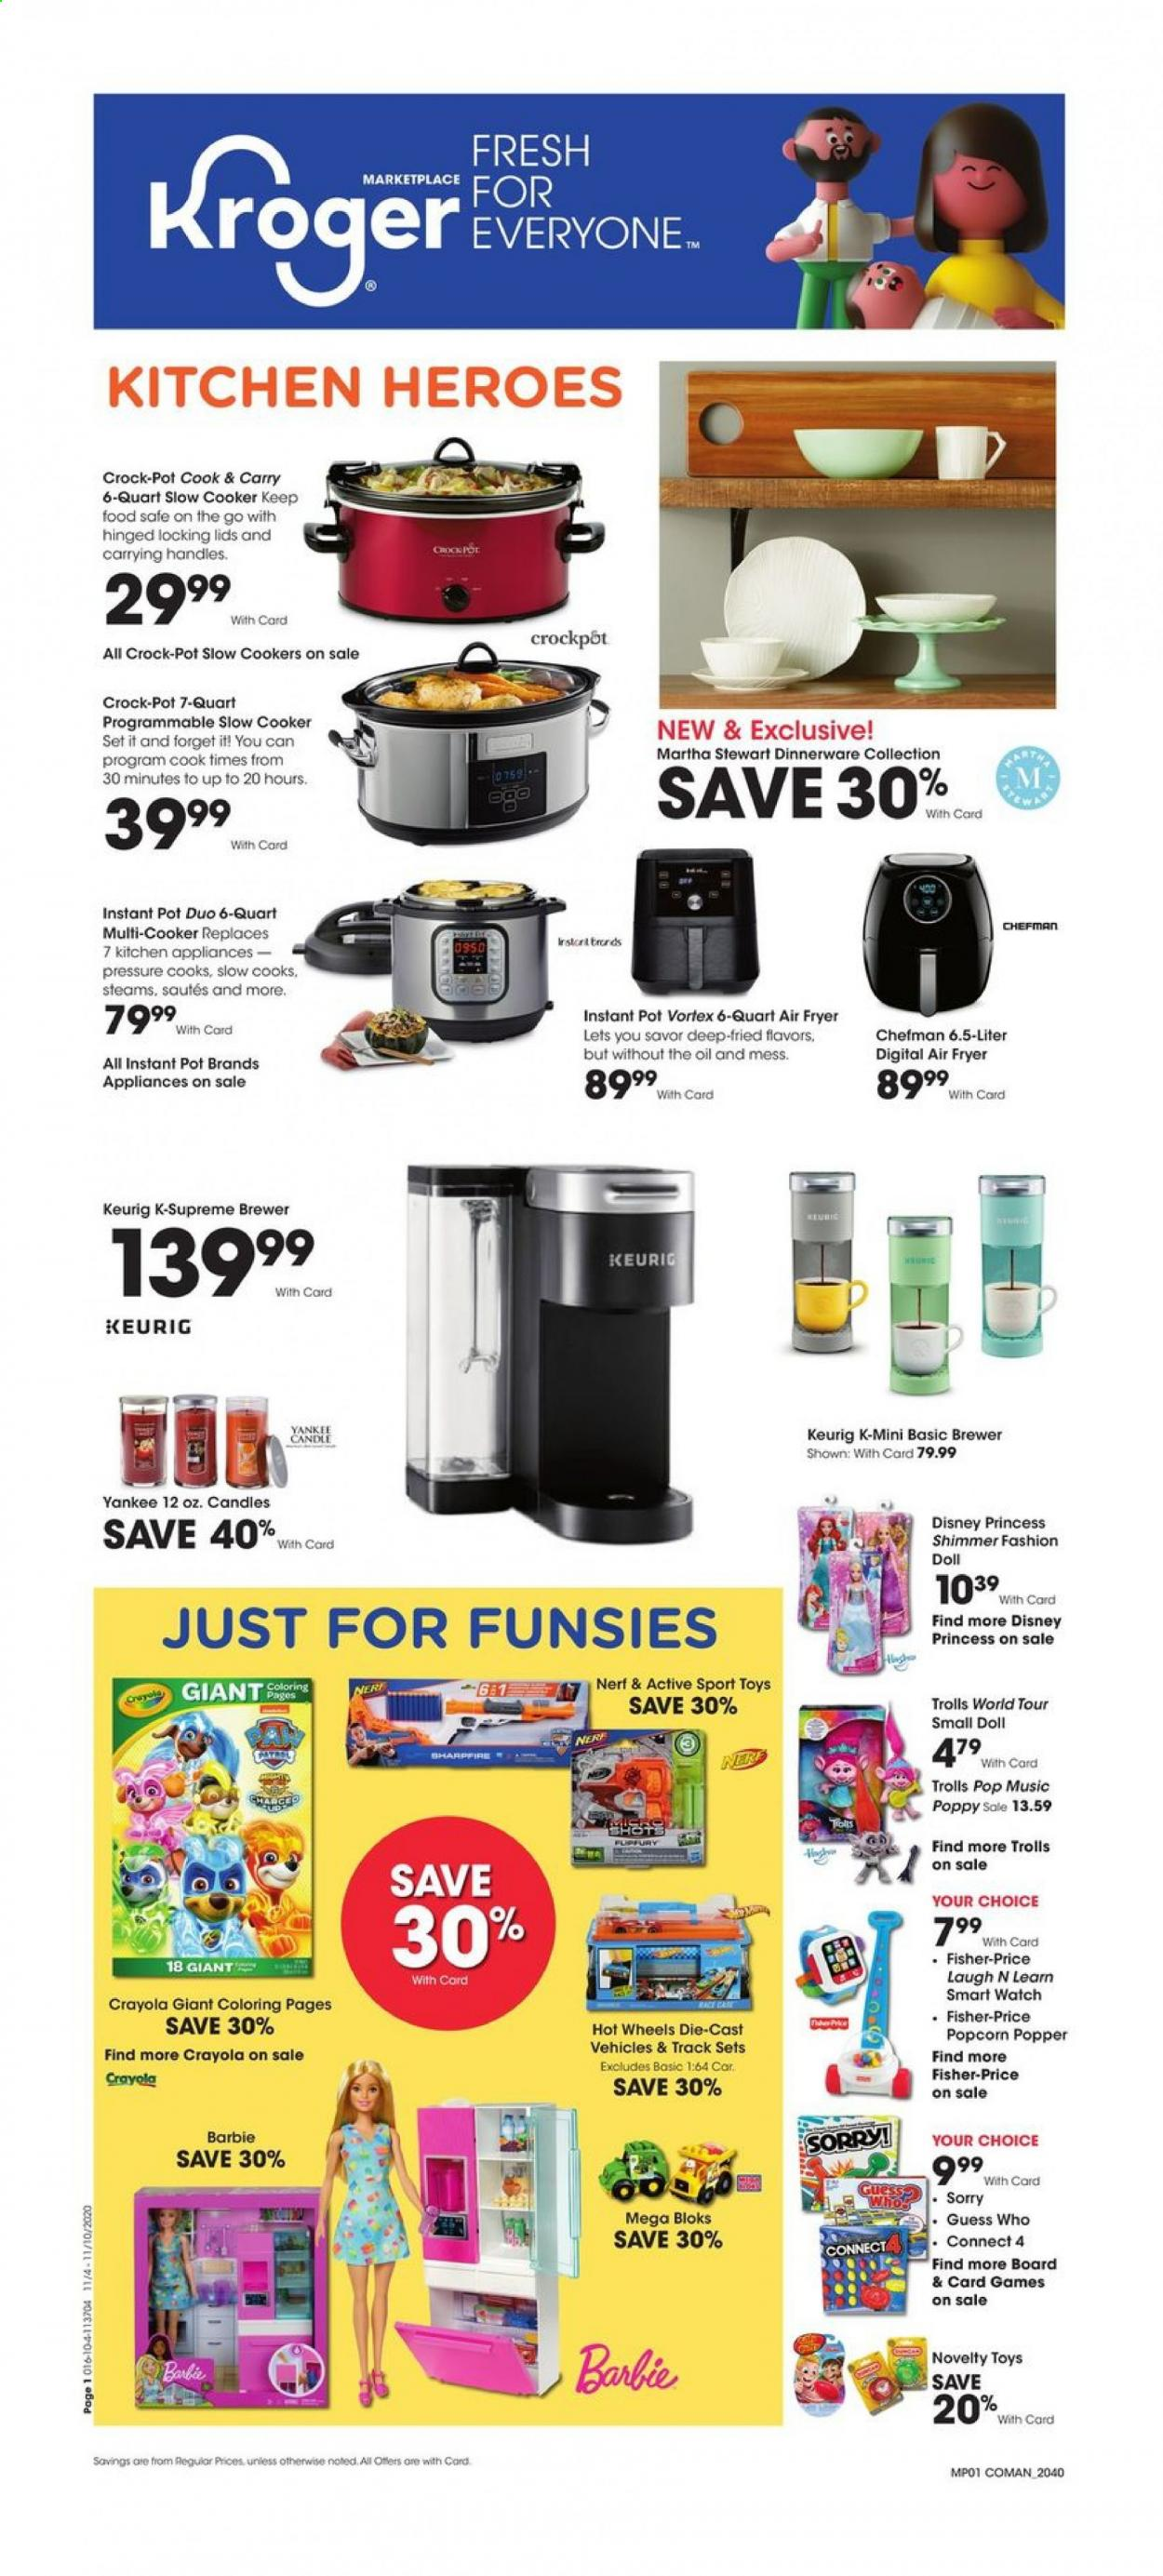 Kroger Flyer - 11.04.2020 - 11.10.2020 - Sales products - Barbie, candle, Disney, doll, fryer, Mega Bloks, Nerf, slow cooker, VORTEX, Yankee Candle, handles, Kitchen, popper, pot, Chefman, toys, air fryer, Instant Pot, Game, hot wheels, brewer, Fisher-Price, guess who, oil, crock pot, smart watch, princess, disney princess. Page 1.